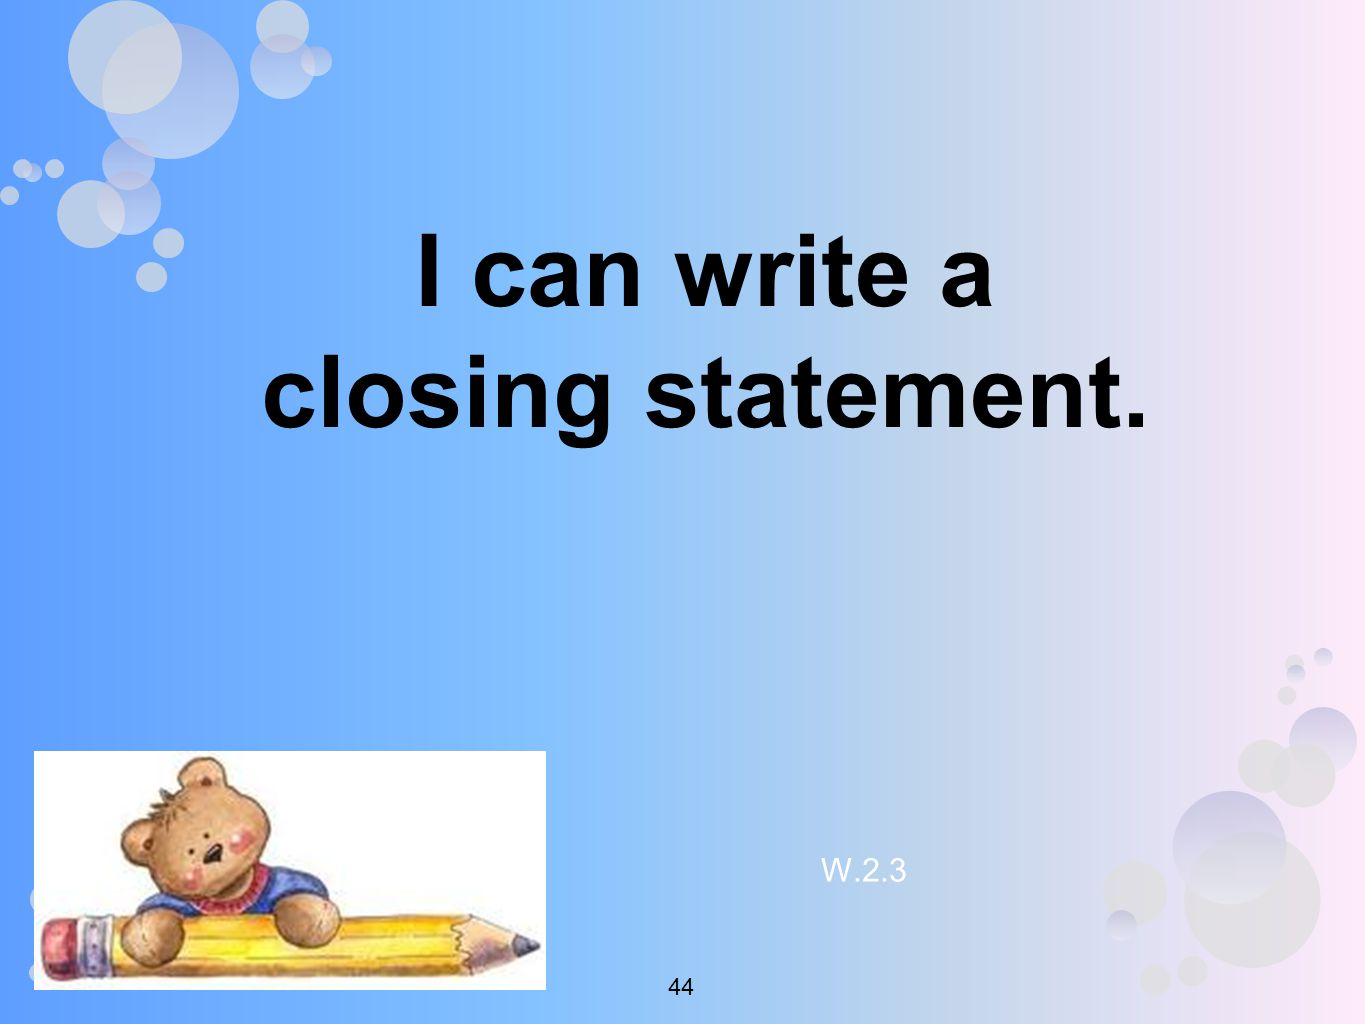 I can write a closing statement. W